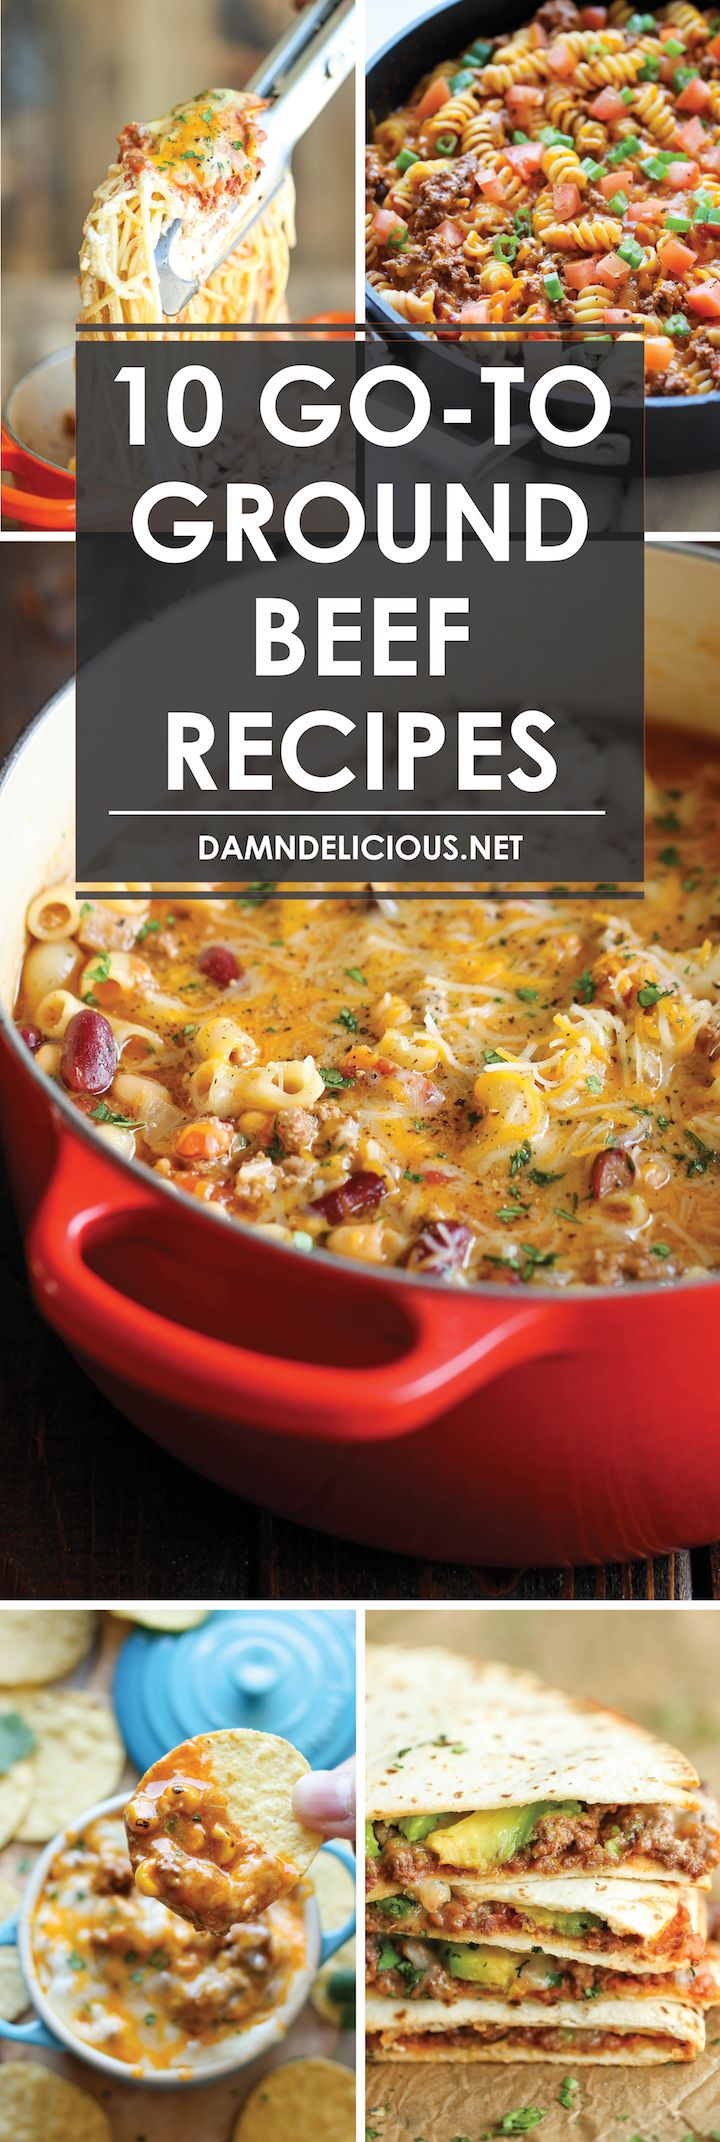 Photo of 10 Go-To Ground Beef Recipes – Damn Delicious